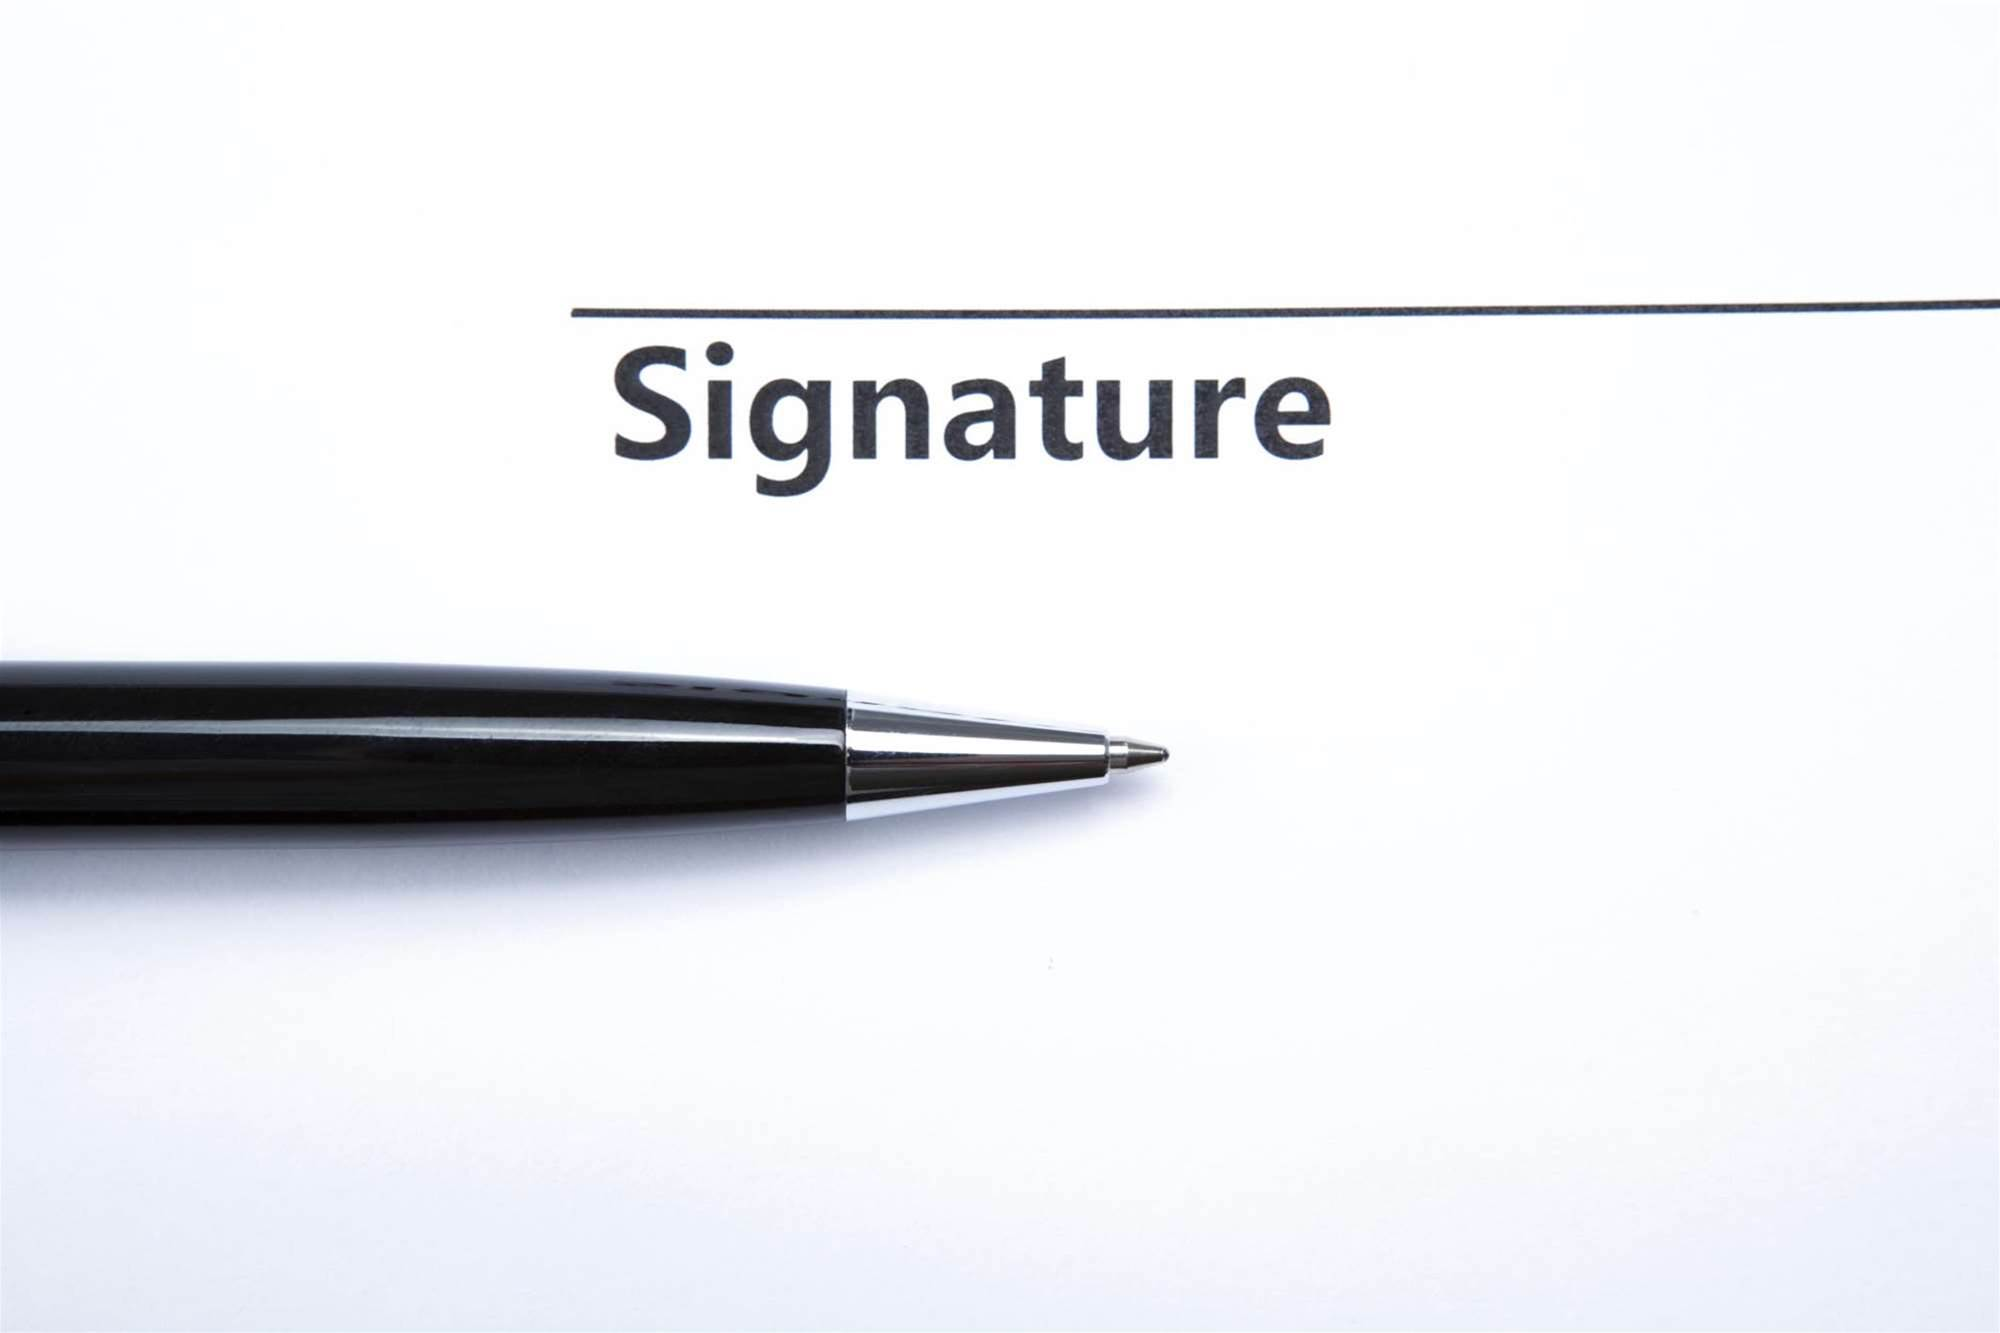 Inside the legalities of digital signatures